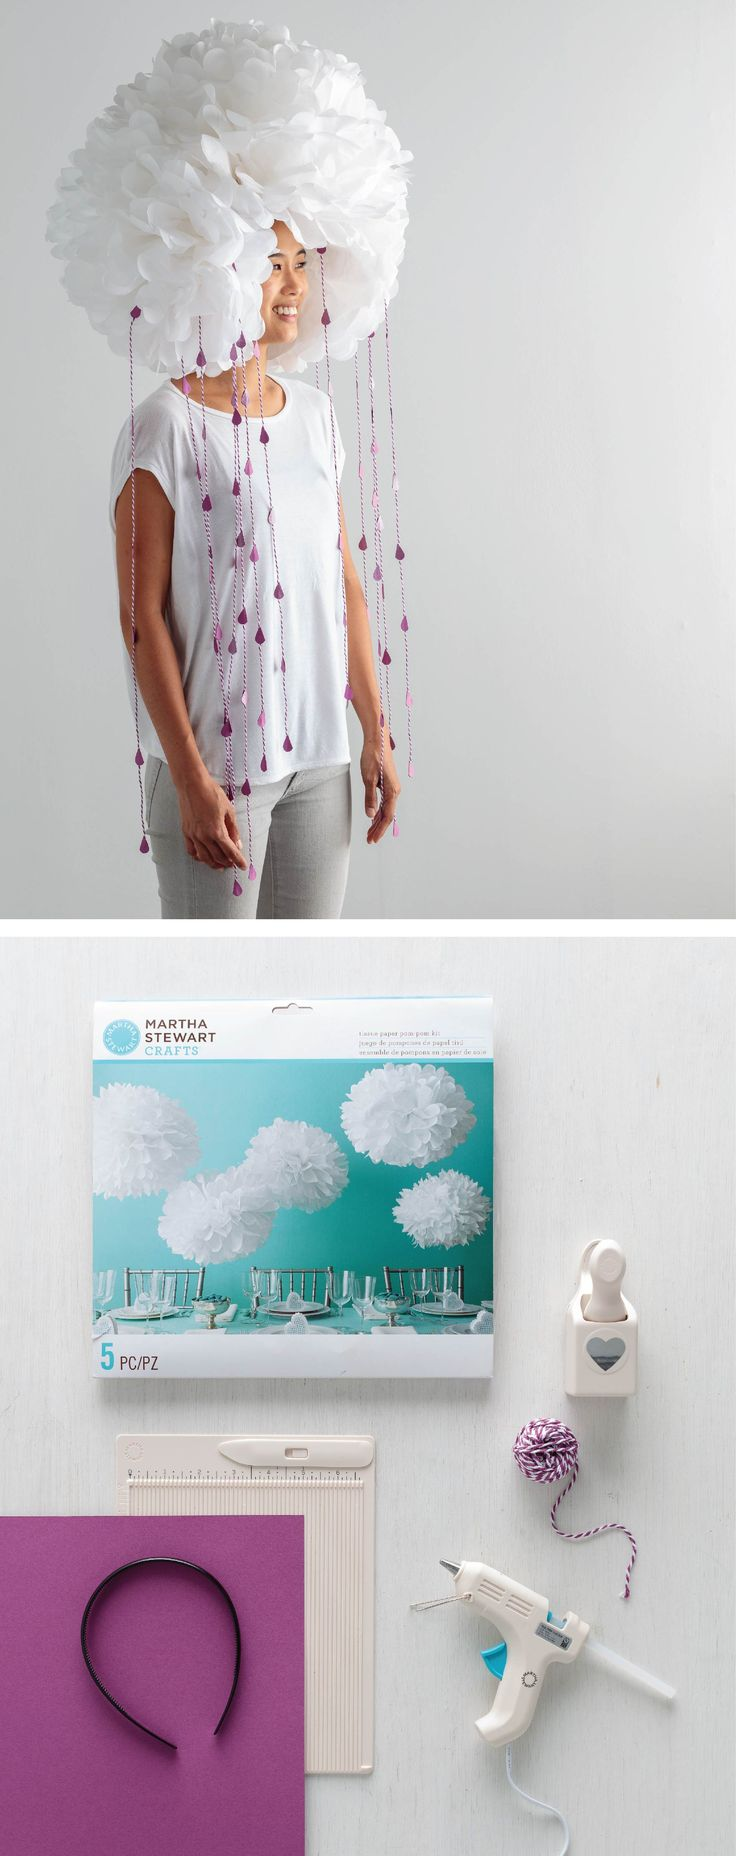 Keep your head in the clouds with this funky, but sweet rain cloud costume! Use the Martha Stewart Crafts heart punch to create rain drops and hang them from your pom-pom cloud.